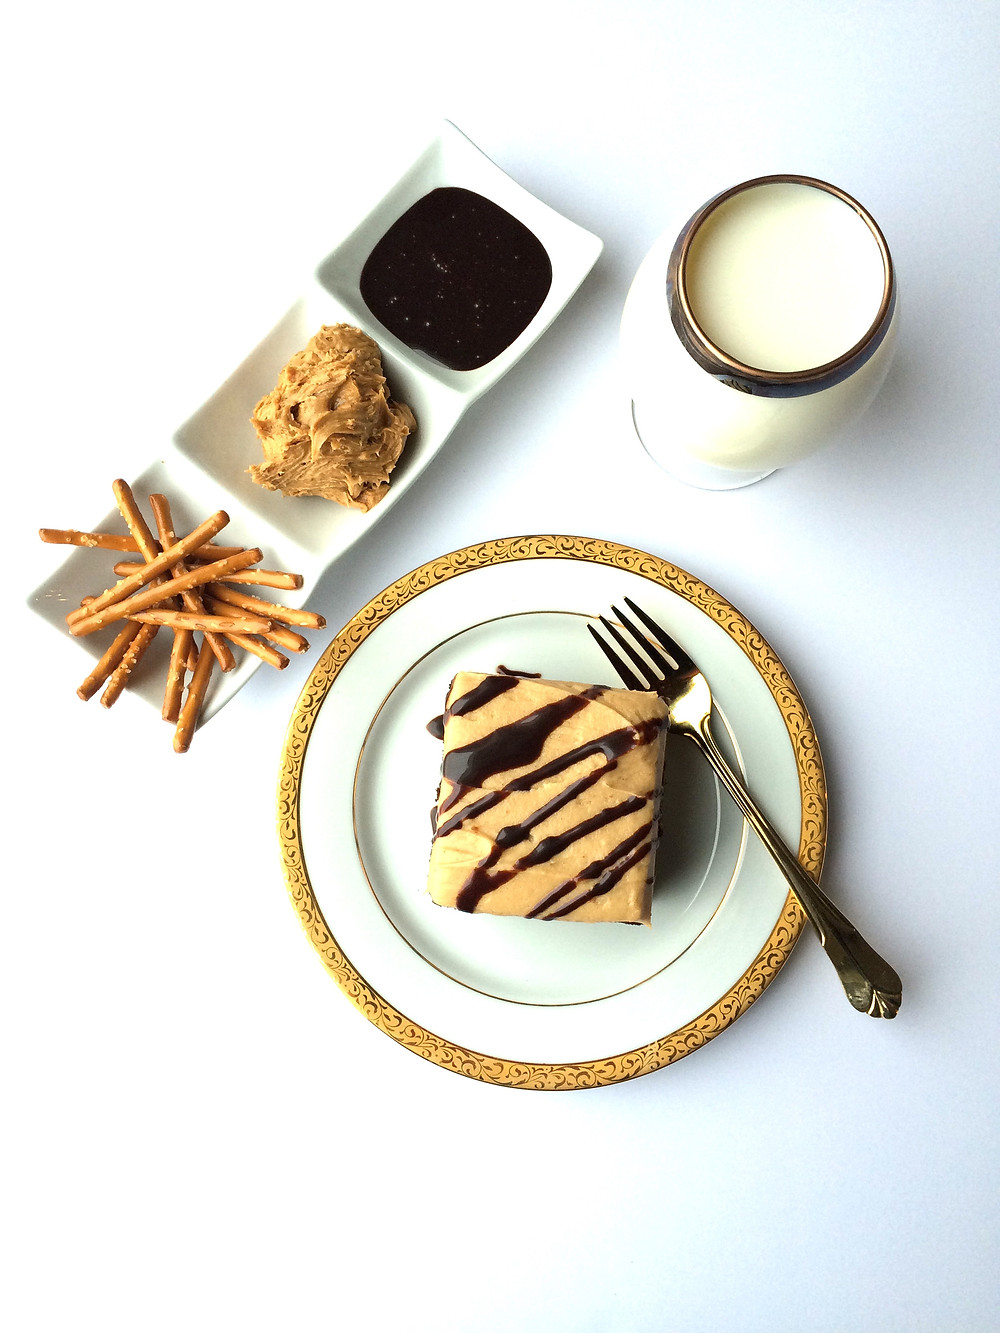 Pretzel Crusted Chocolate Cake with Peanut Butter Frosting